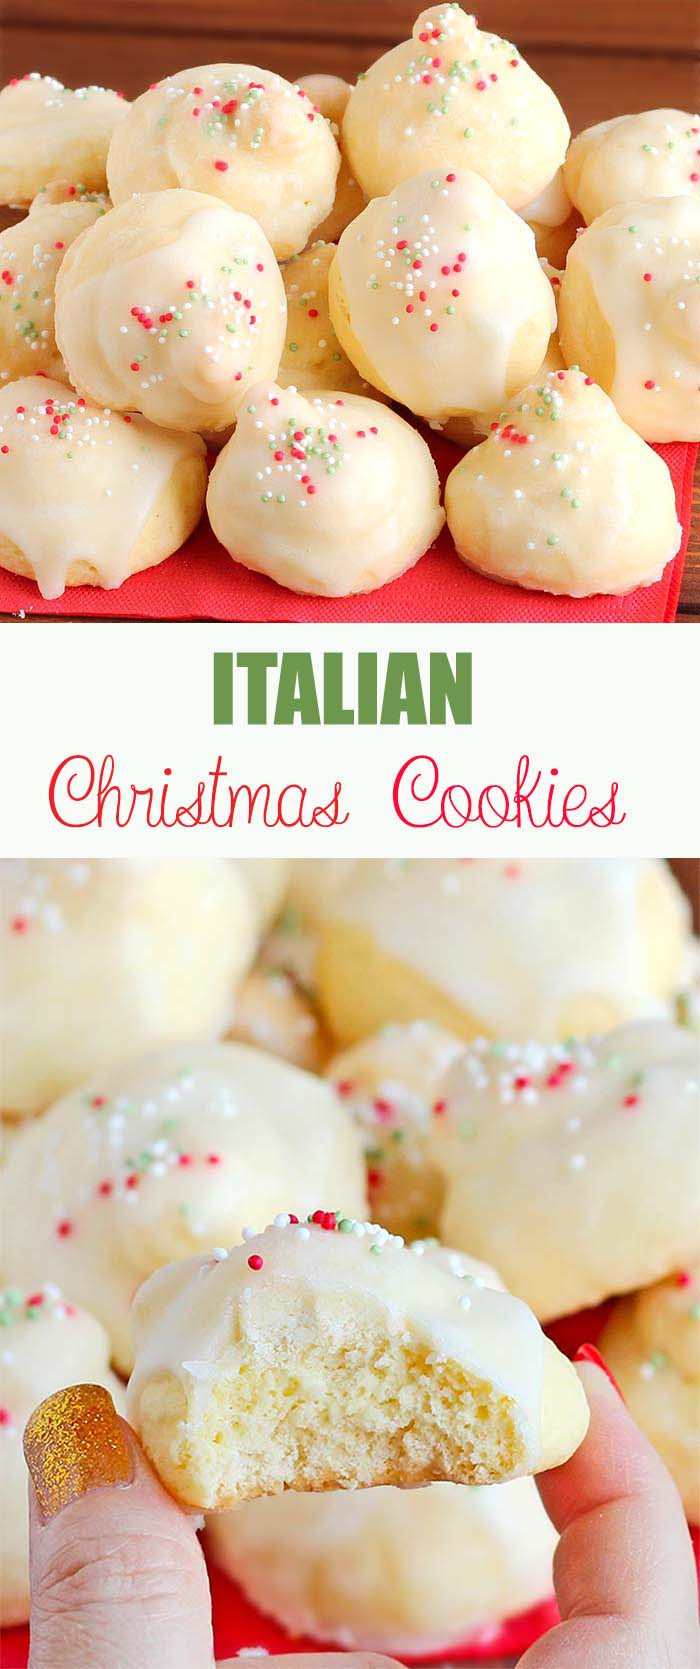 Italian Christmas Cookies Recipes With Pictures  Italian Christmas Cookies Cakescottage